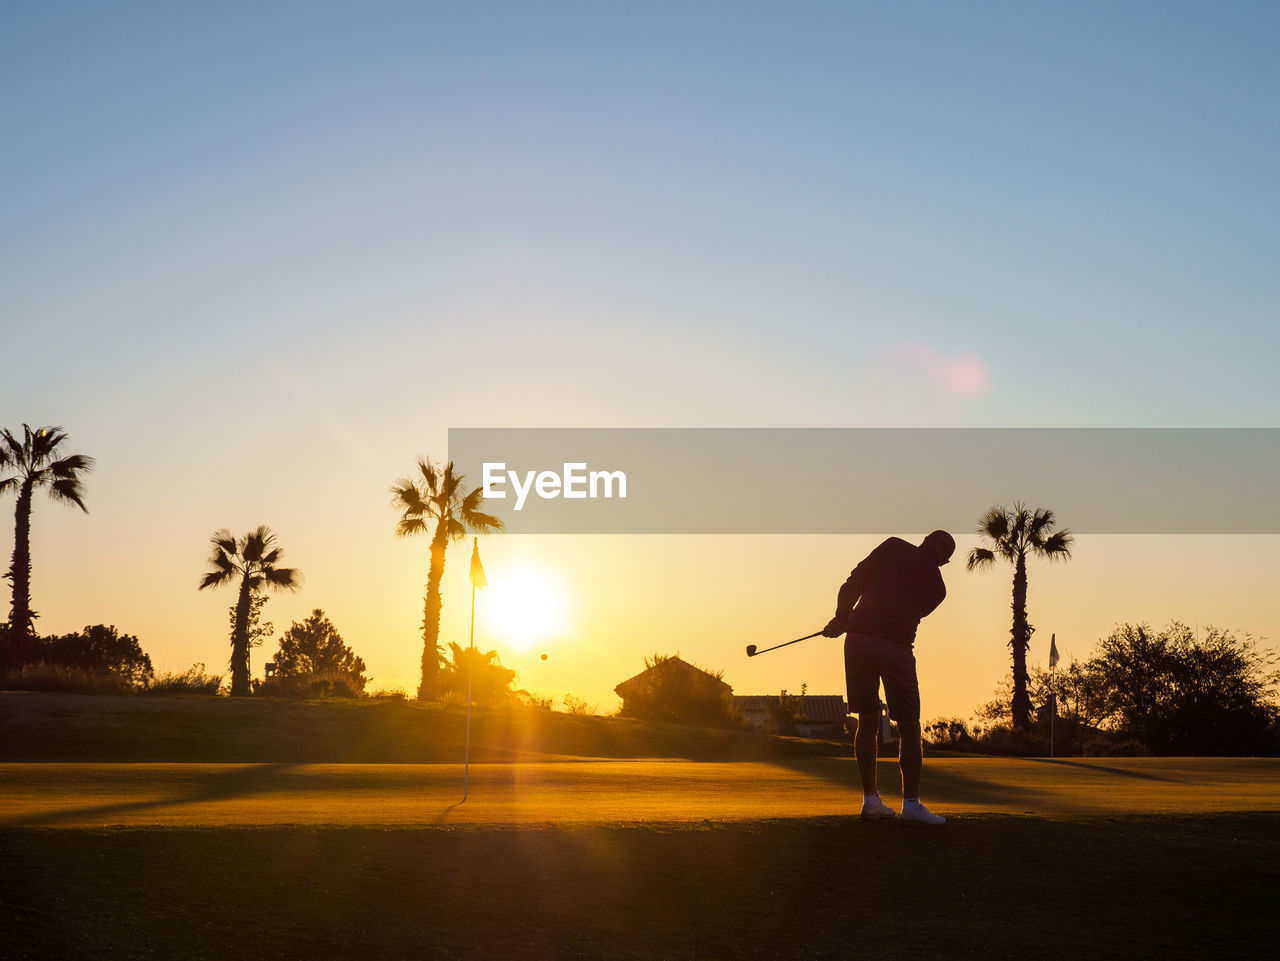 sky, sunset, one person, real people, tree, lifestyles, leisure activity, nature, plant, silhouette, palm tree, sunlight, beauty in nature, full length, scenics - nature, tropical climate, copy space, sport, standing, sun, outdoors, skill